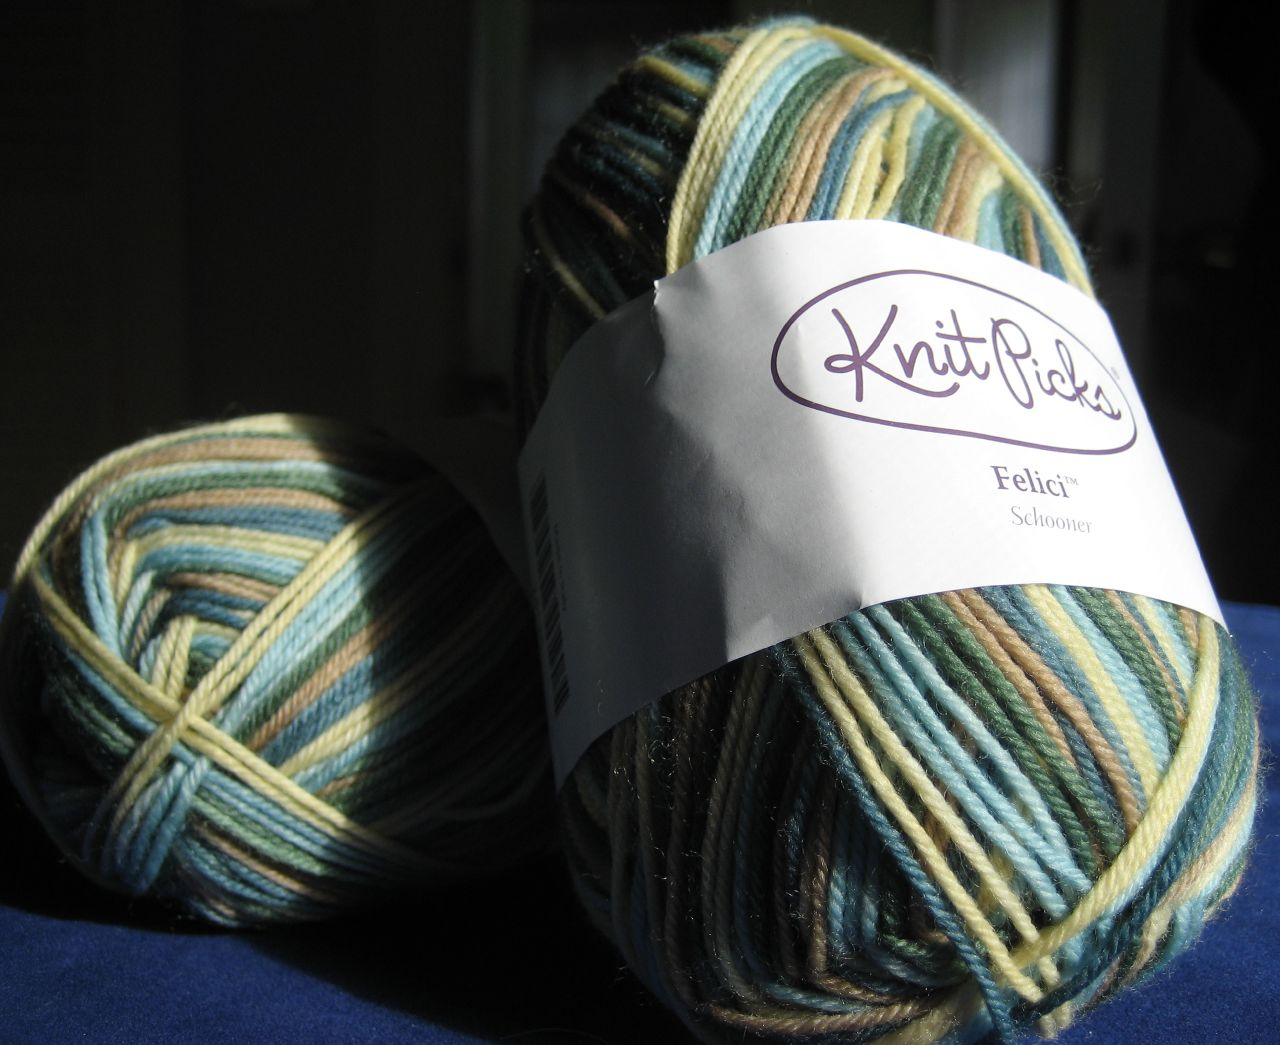 knitpicks schooner